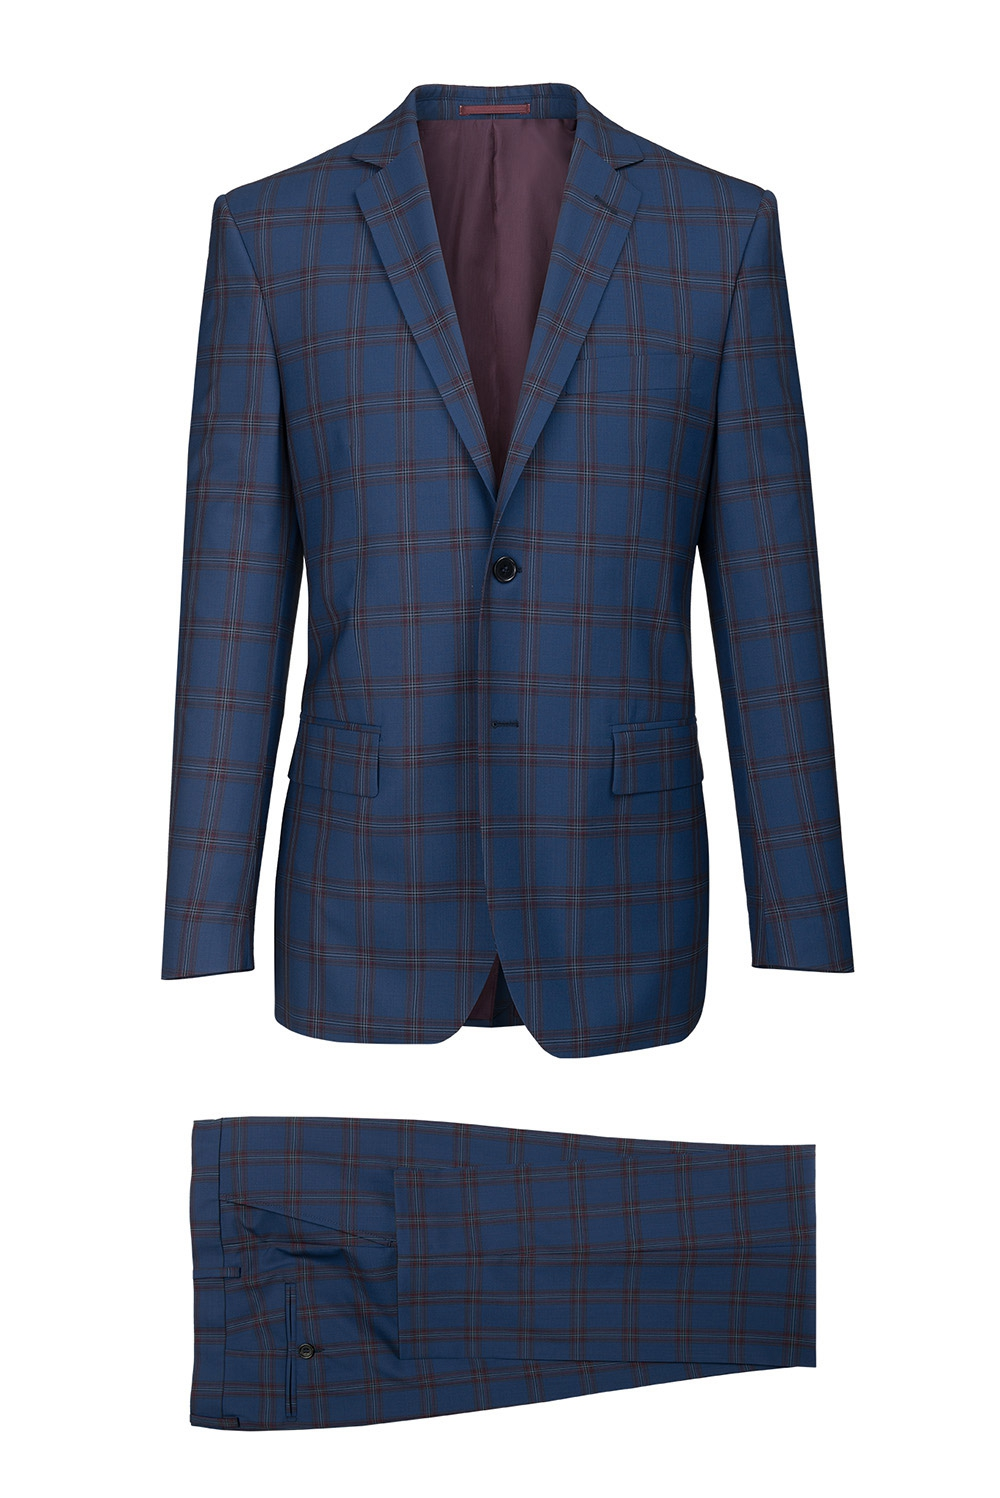 Slim Blue Check Suit 2